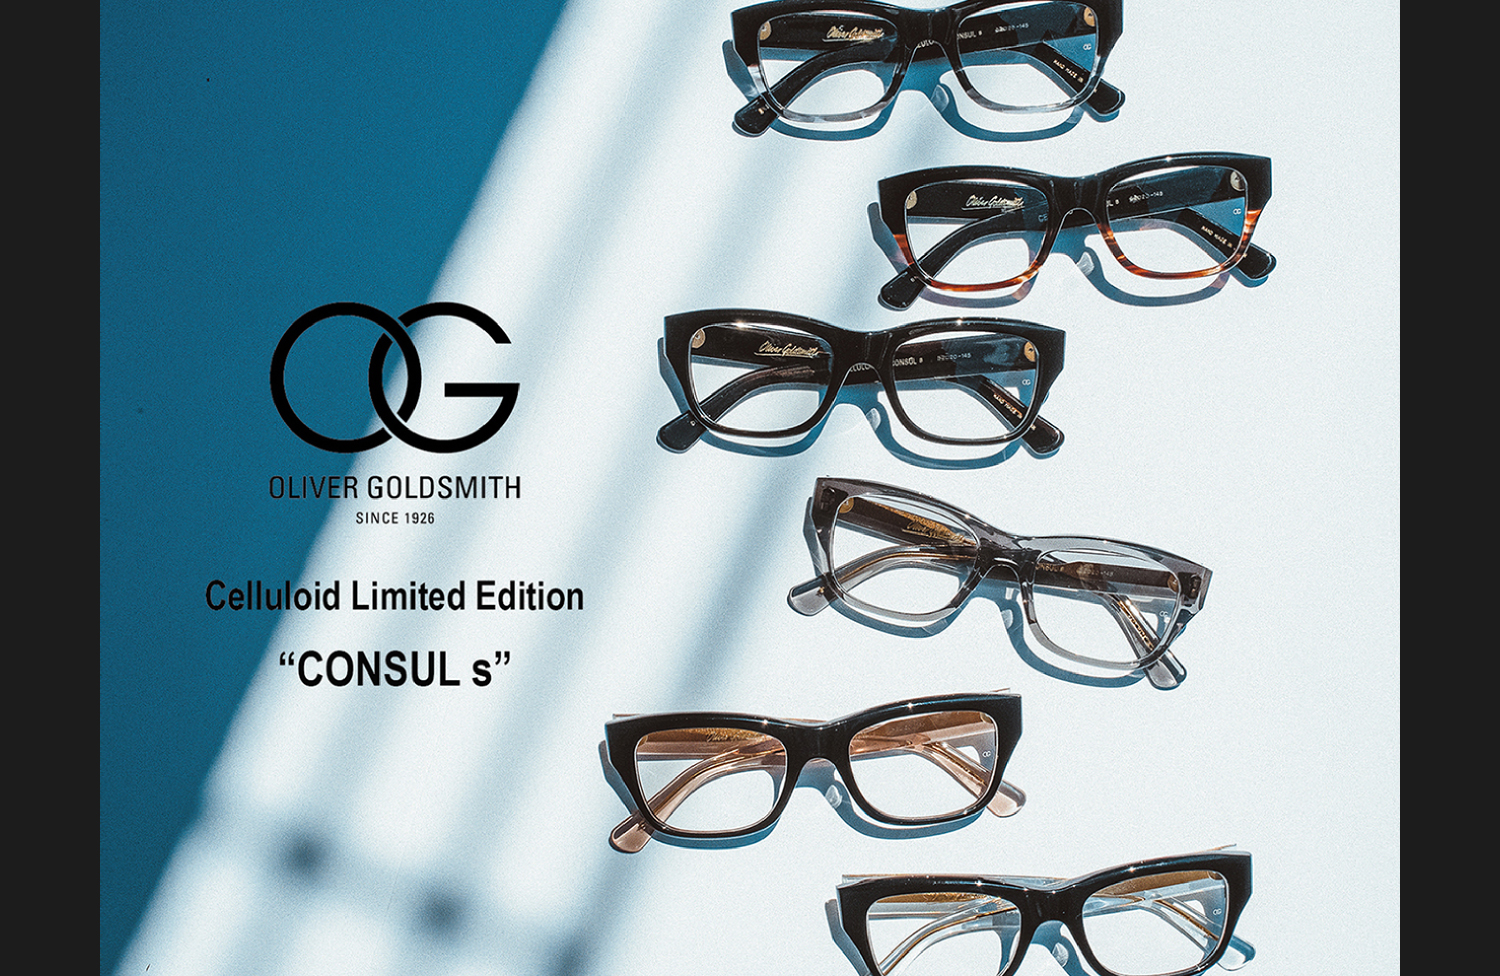 OG OLIVER GOLDSMITH Celluloid Limited Edition CONSULs